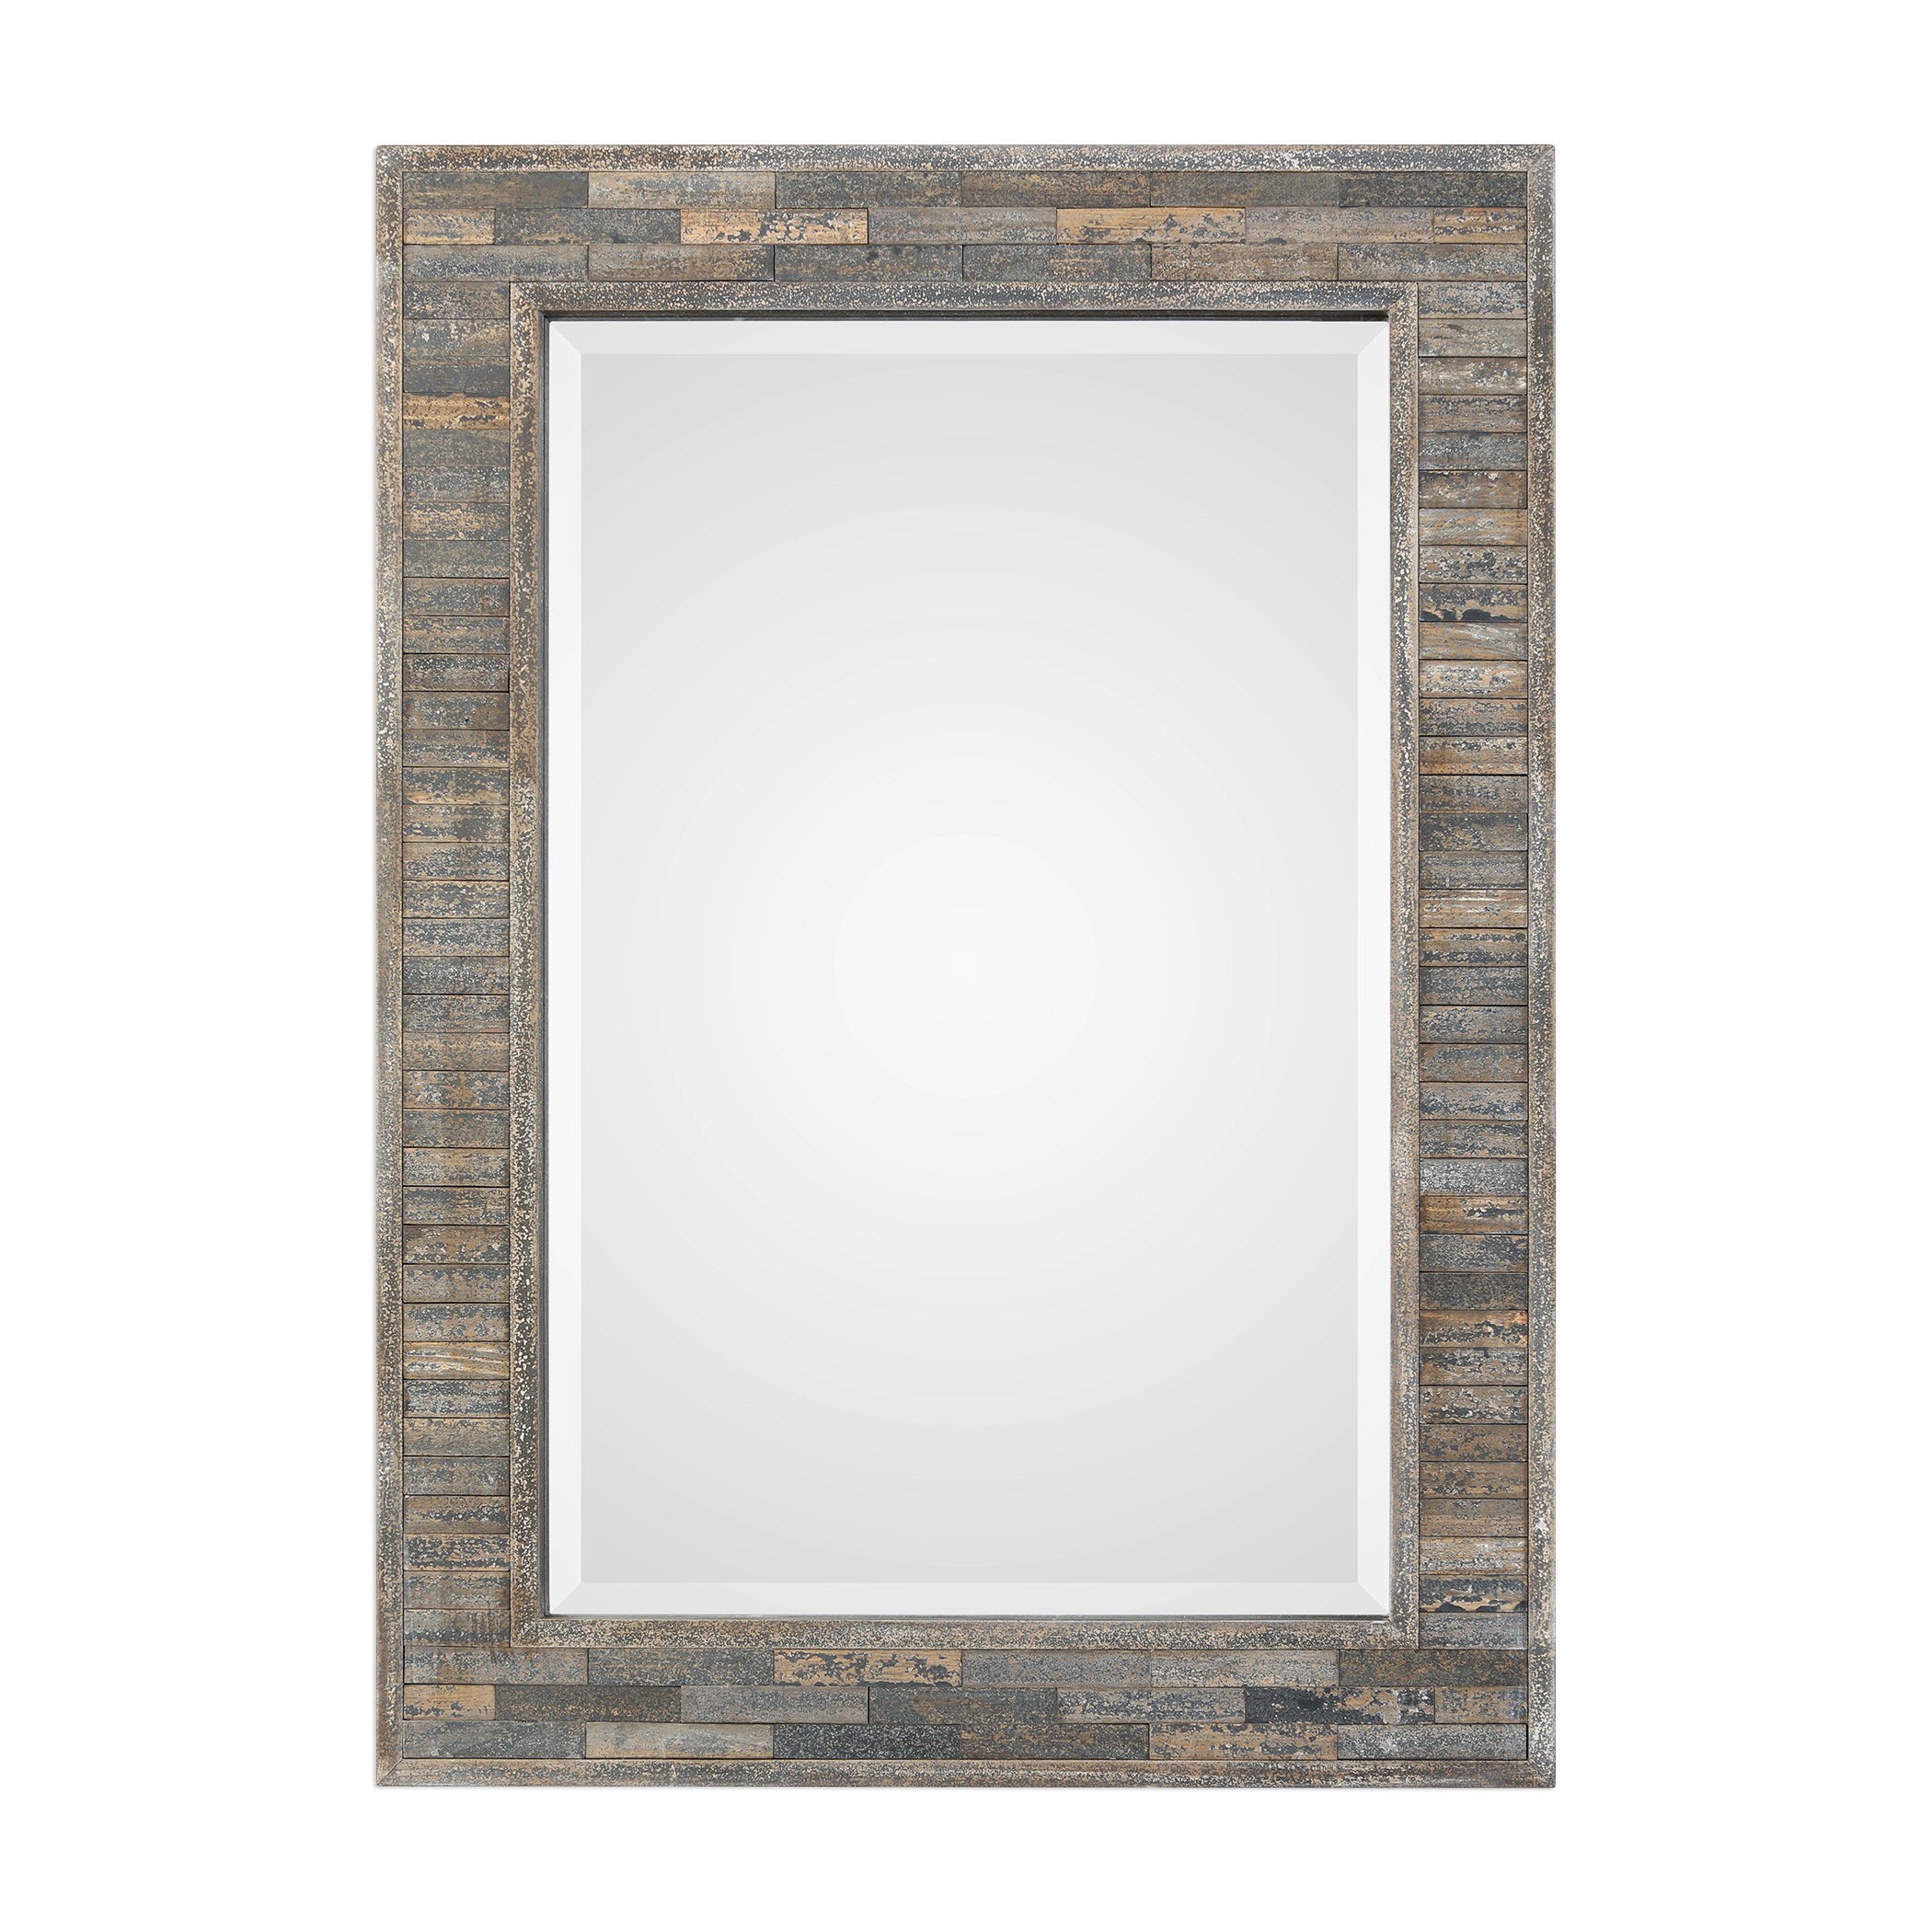 Farmhouse & Rustic Union Rustic Wall & Accent Mirrors In Perillo Burst Wood Accent Mirrors (View 15 of 20)